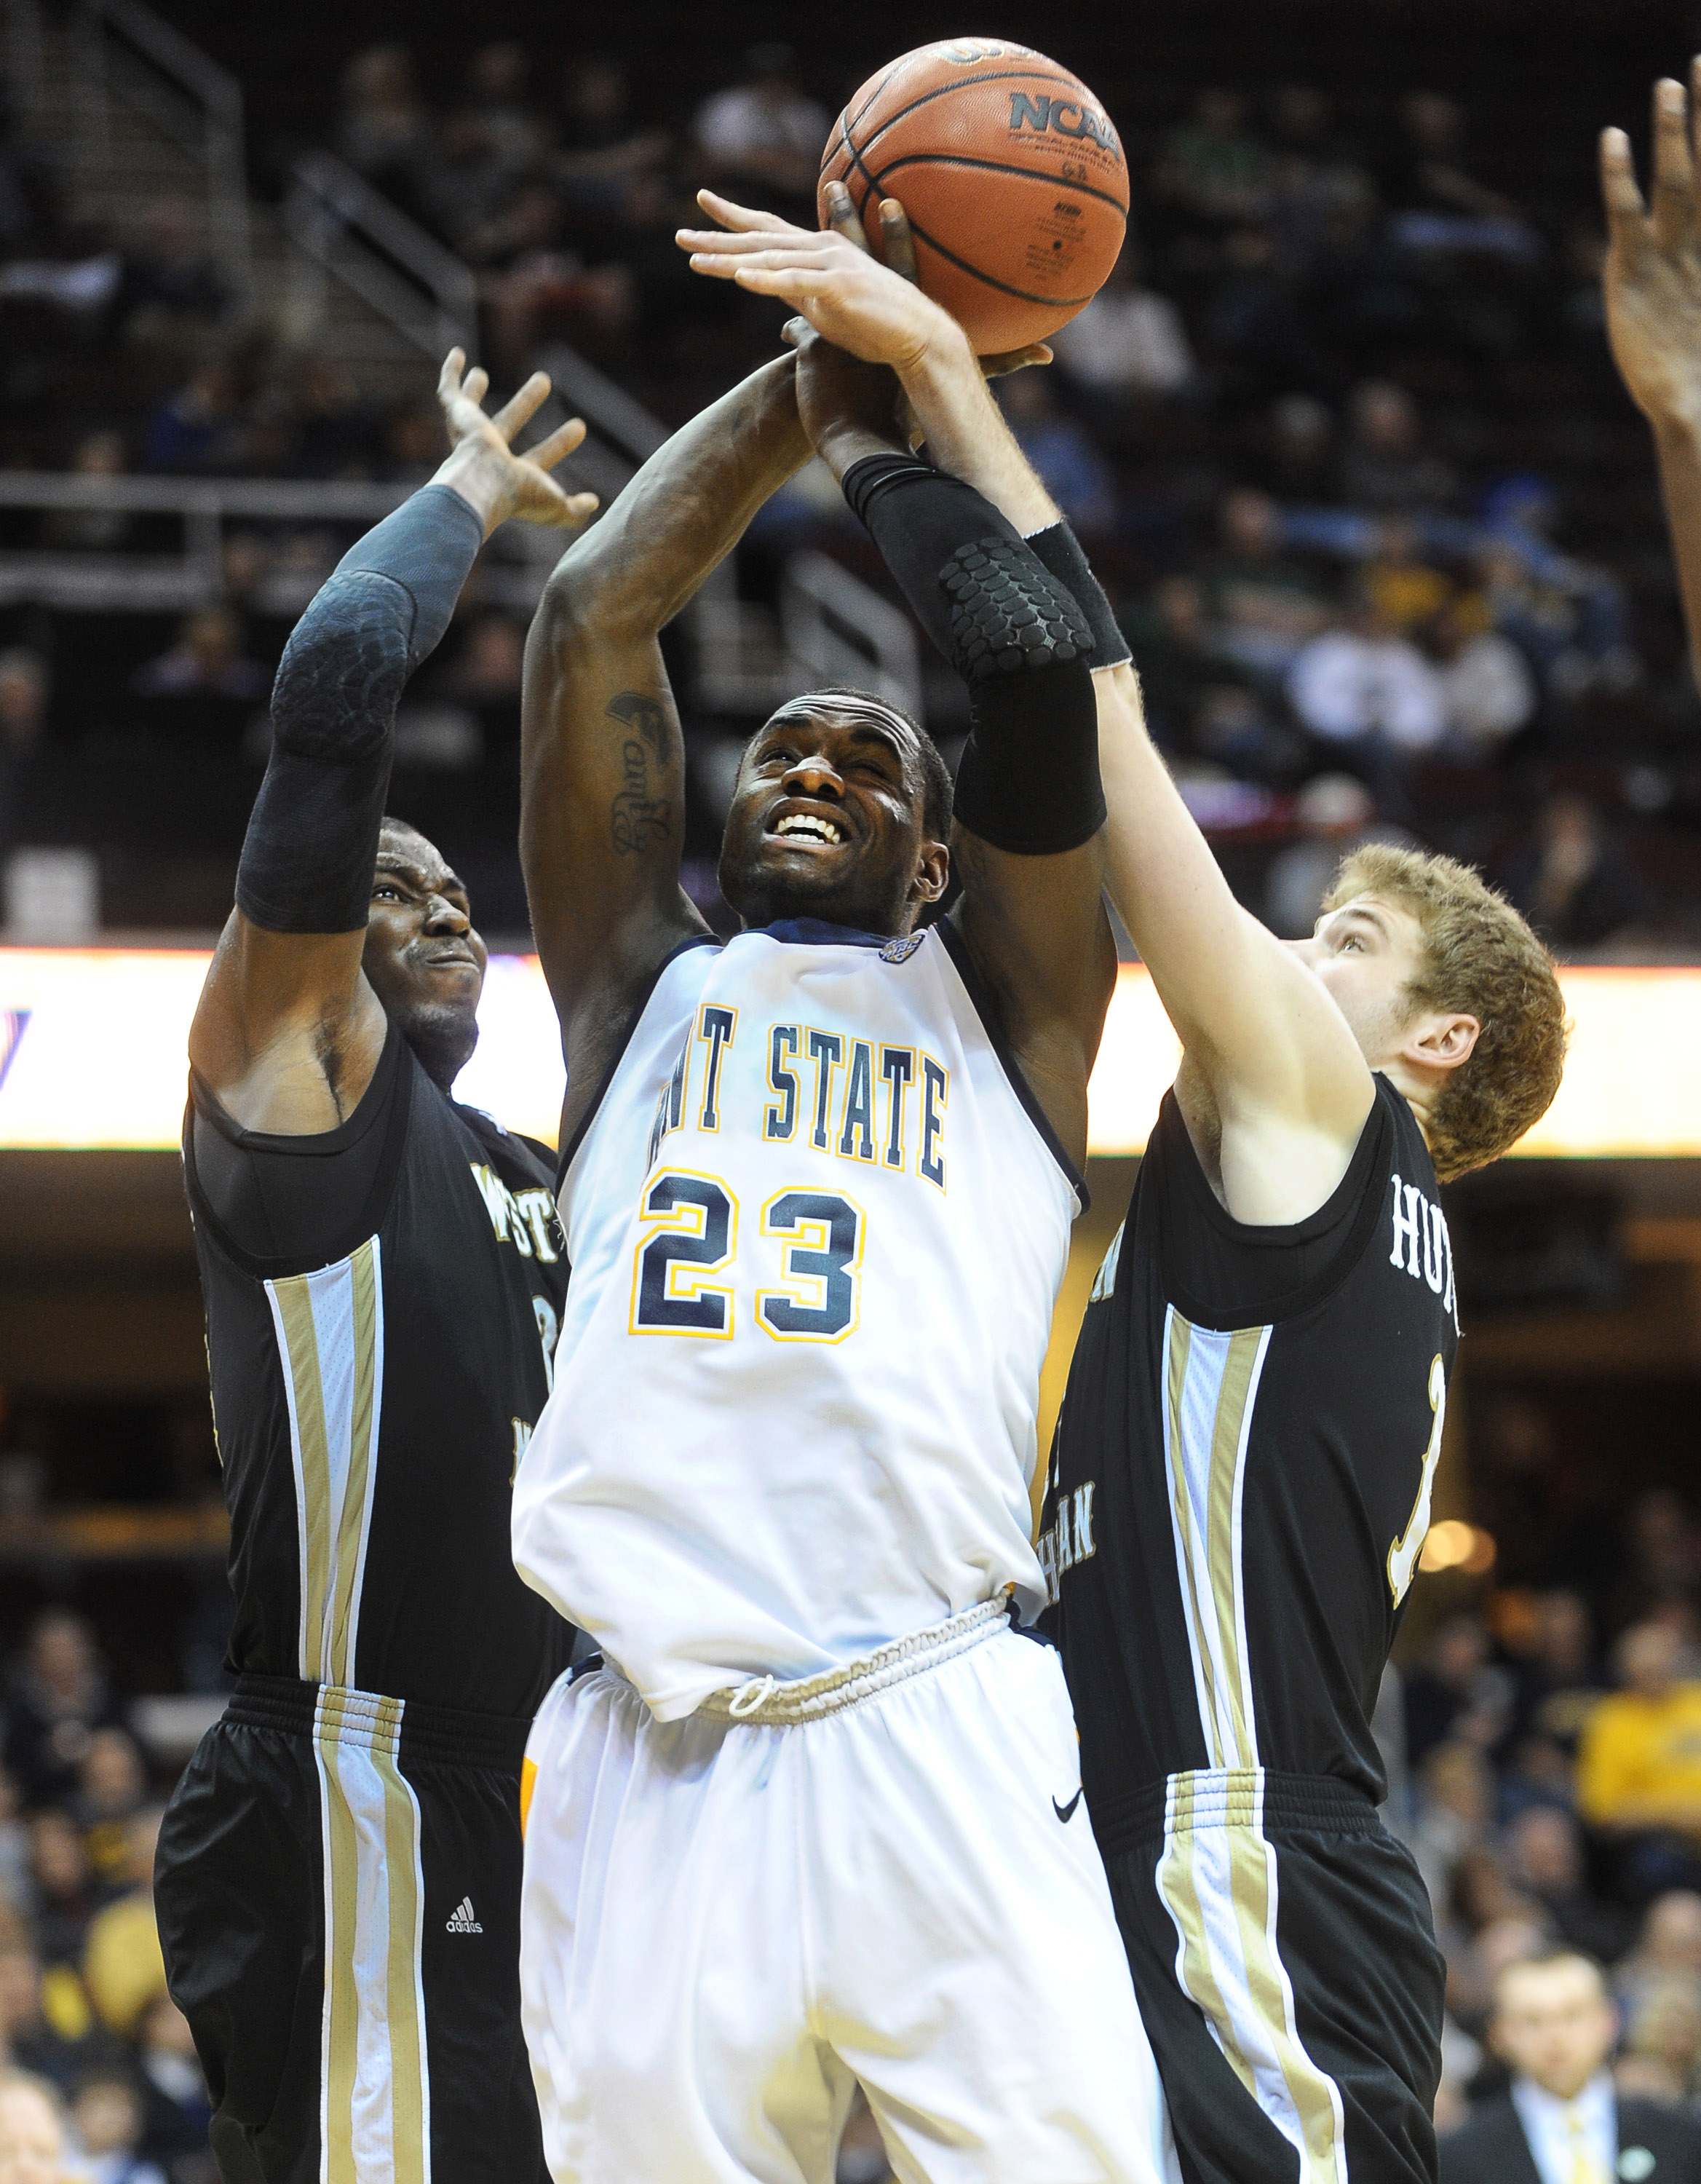 A Kent State player is fouled on the way to the basket during the 2012 MAC Tournament in Cleveland.